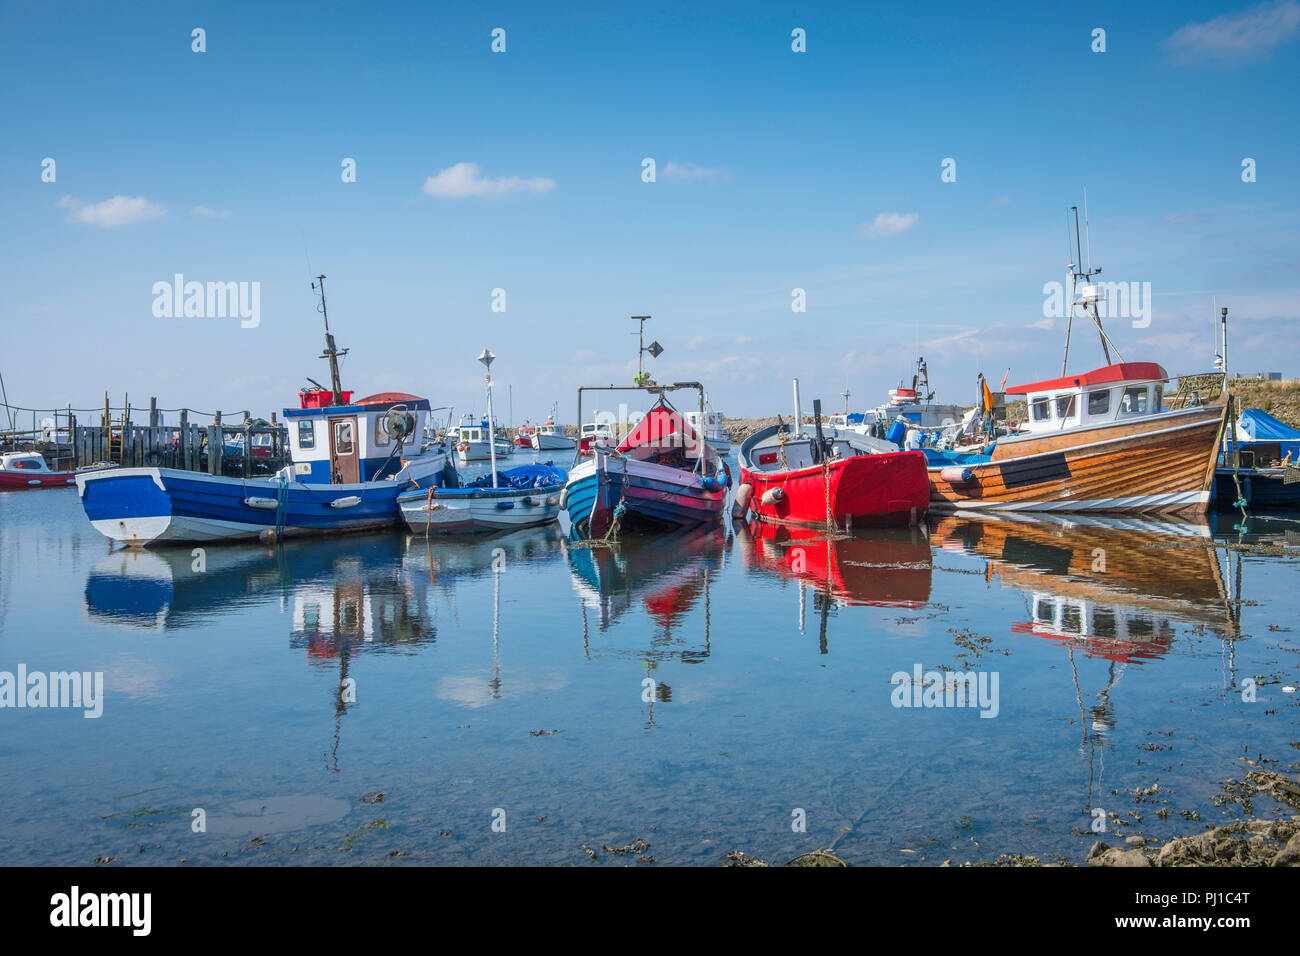 Small fishing boats in Paddy's Hole on South Gare which was named for the many Irishmen who helped build the South Gare. - Stock Image